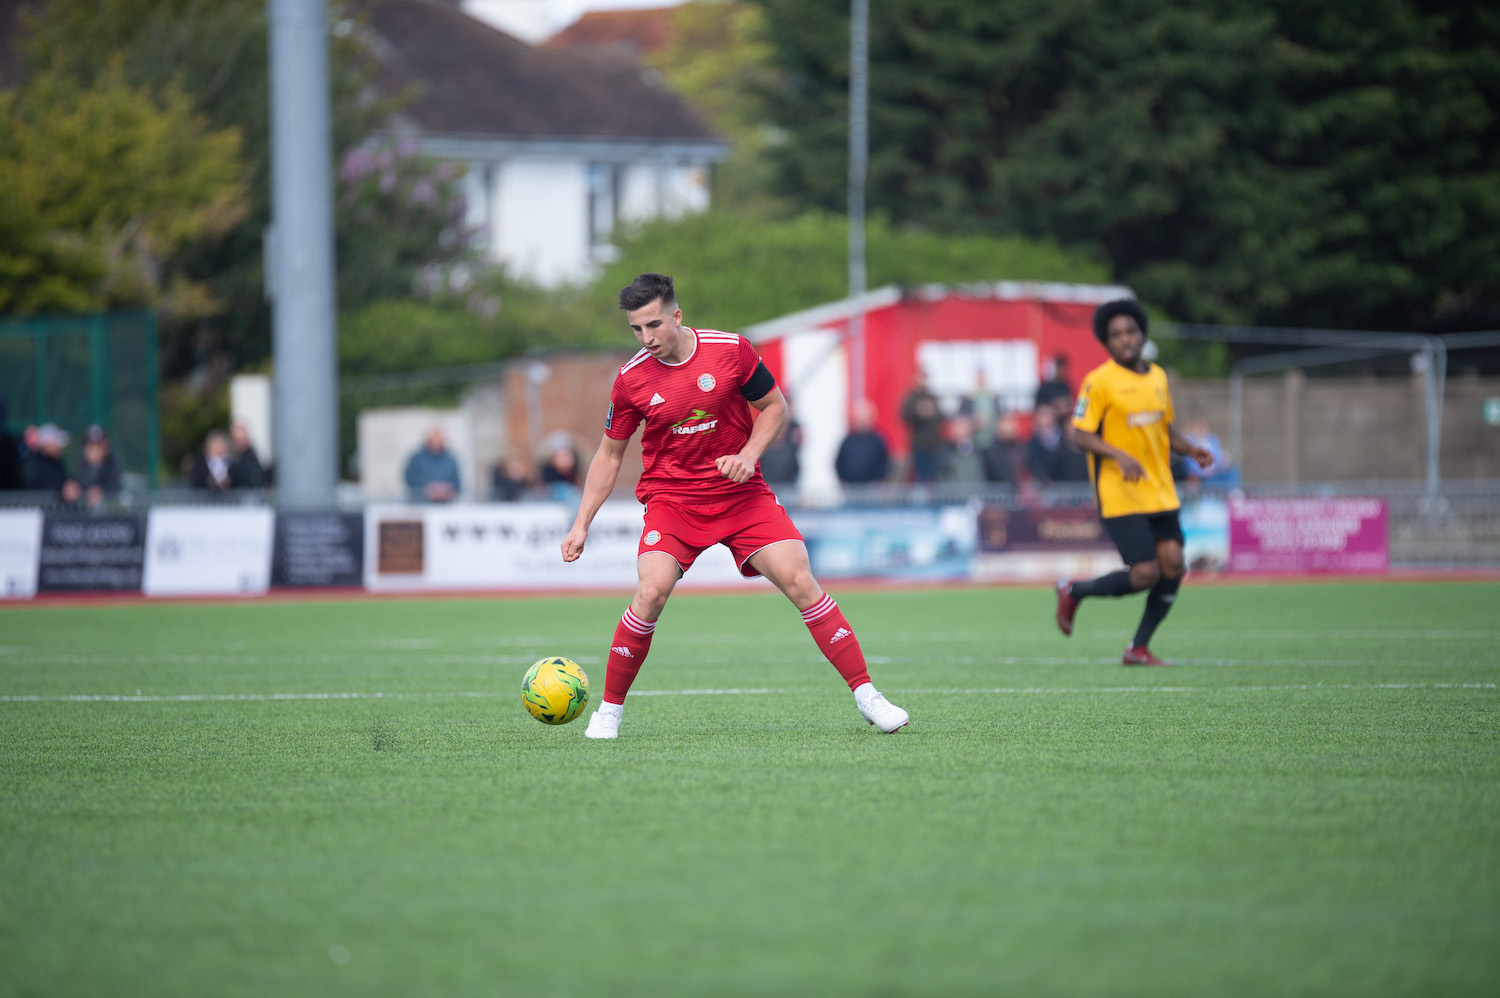 Read the full article - Gallery: Merstham [H] – League